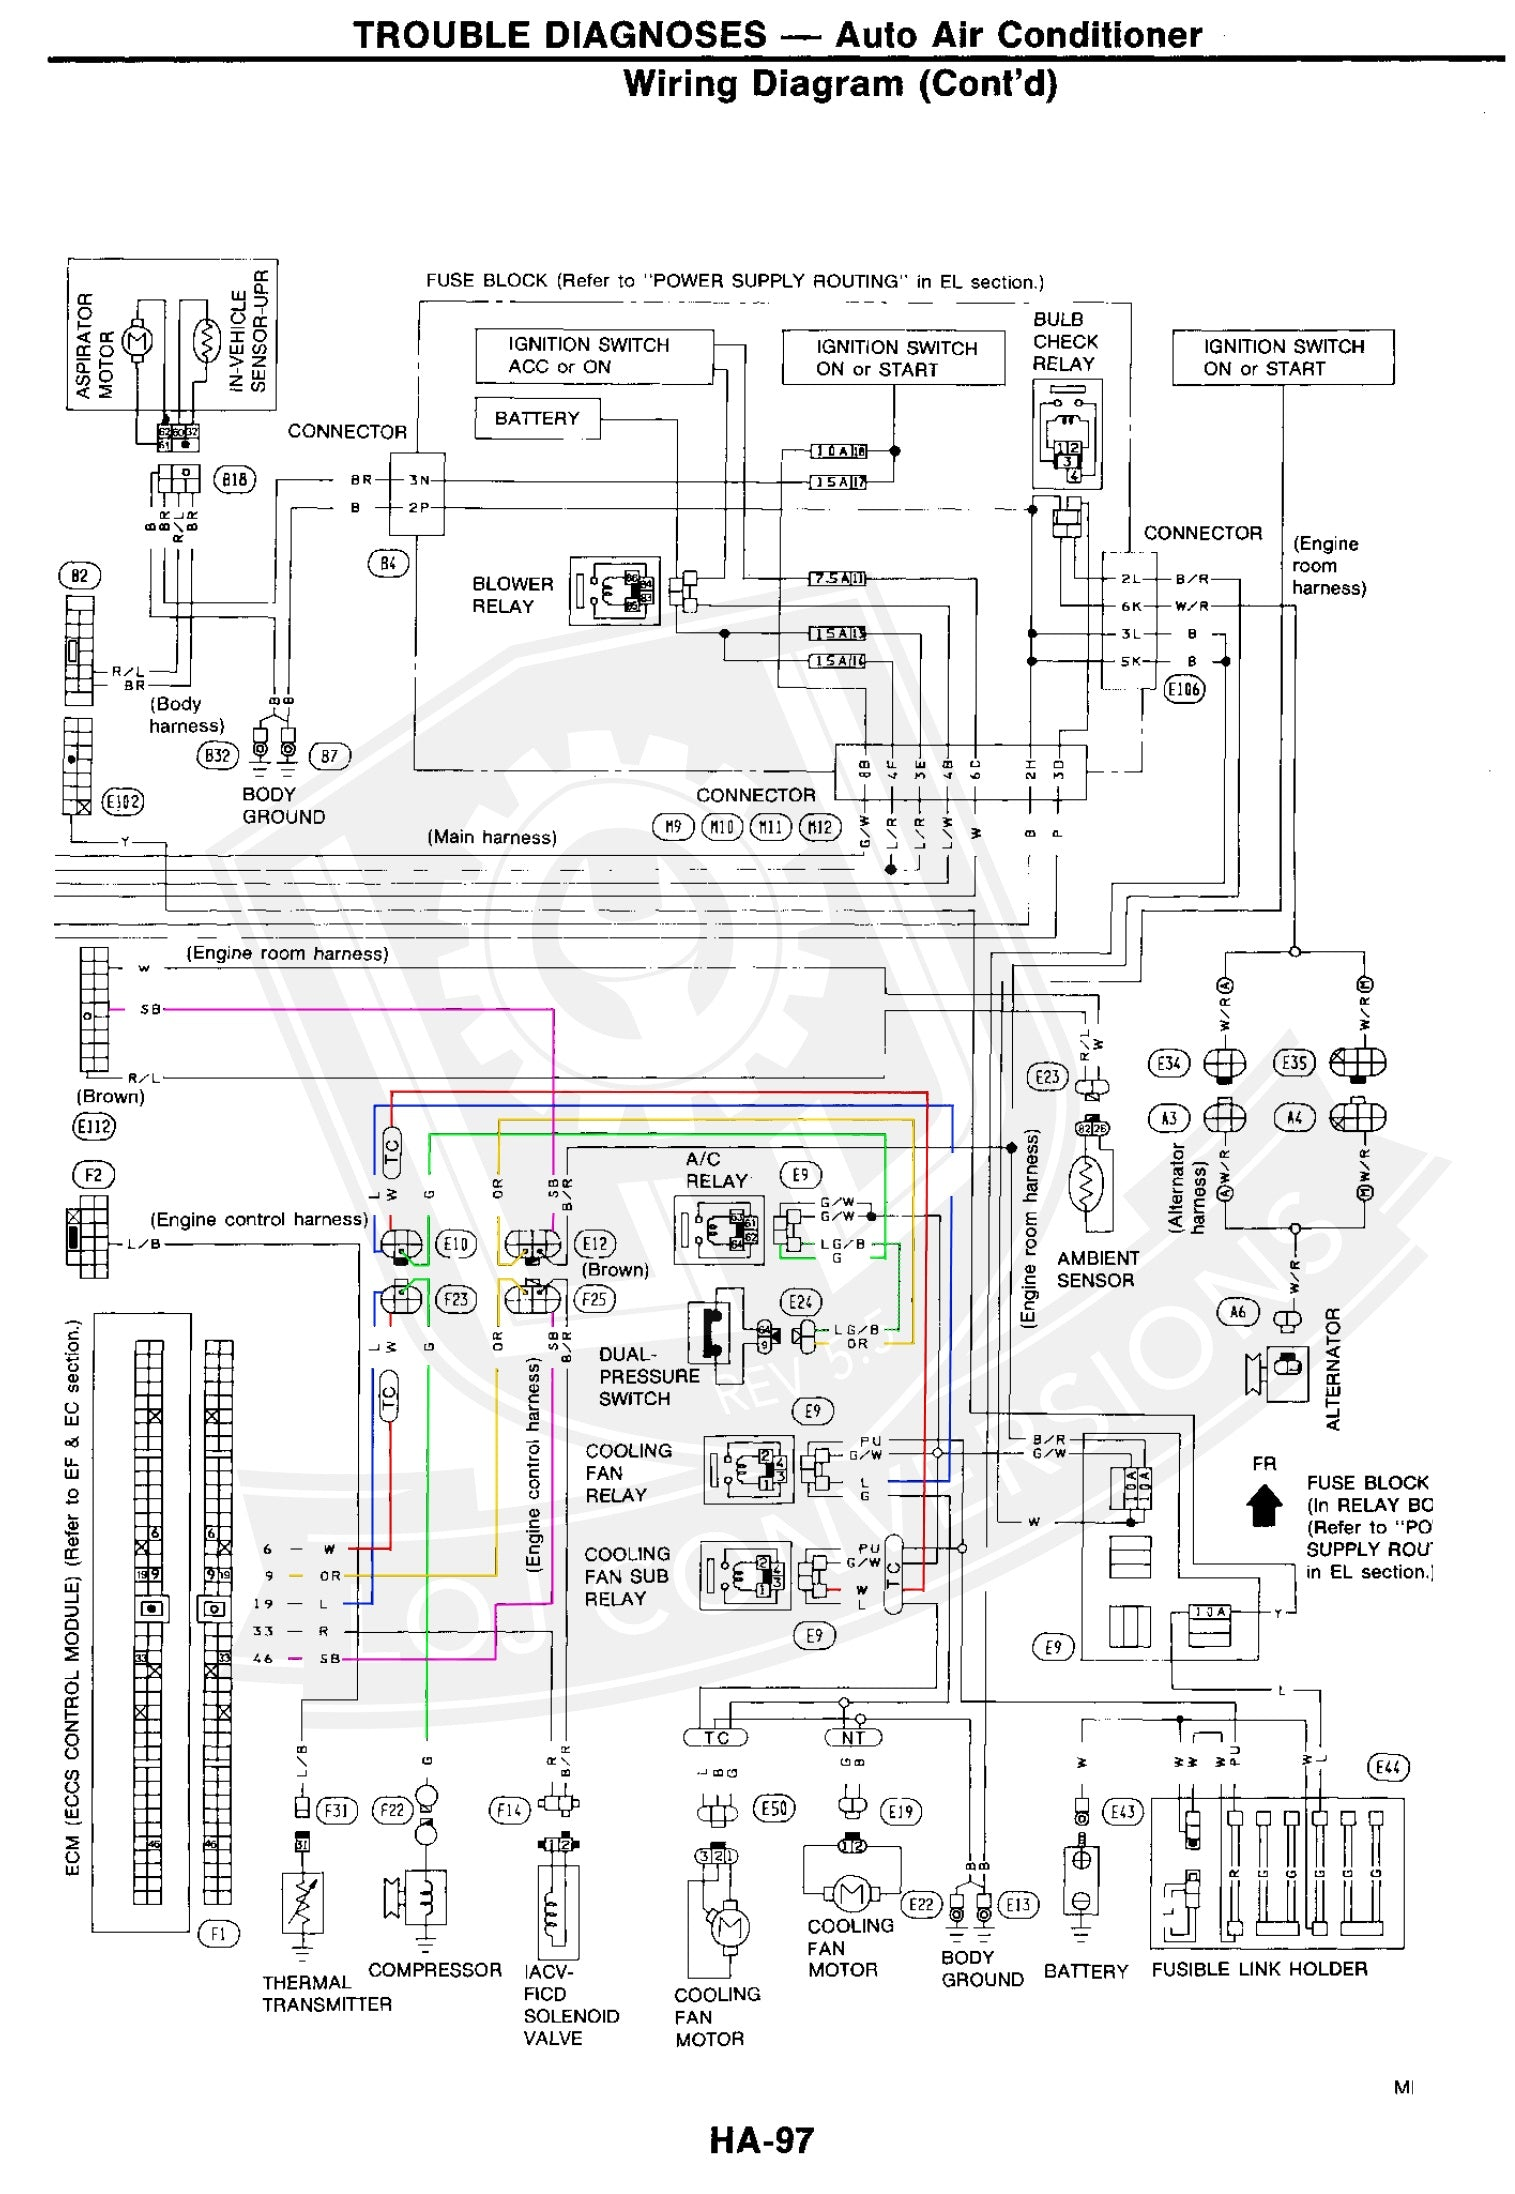 Z32 wiring diagram 300zx wiring diagram wiring diagrams wiring the ac in a 300zx engine conversion loj conversions 300zx wiring diagram engine z32 300zx cheapraybanclubmaster